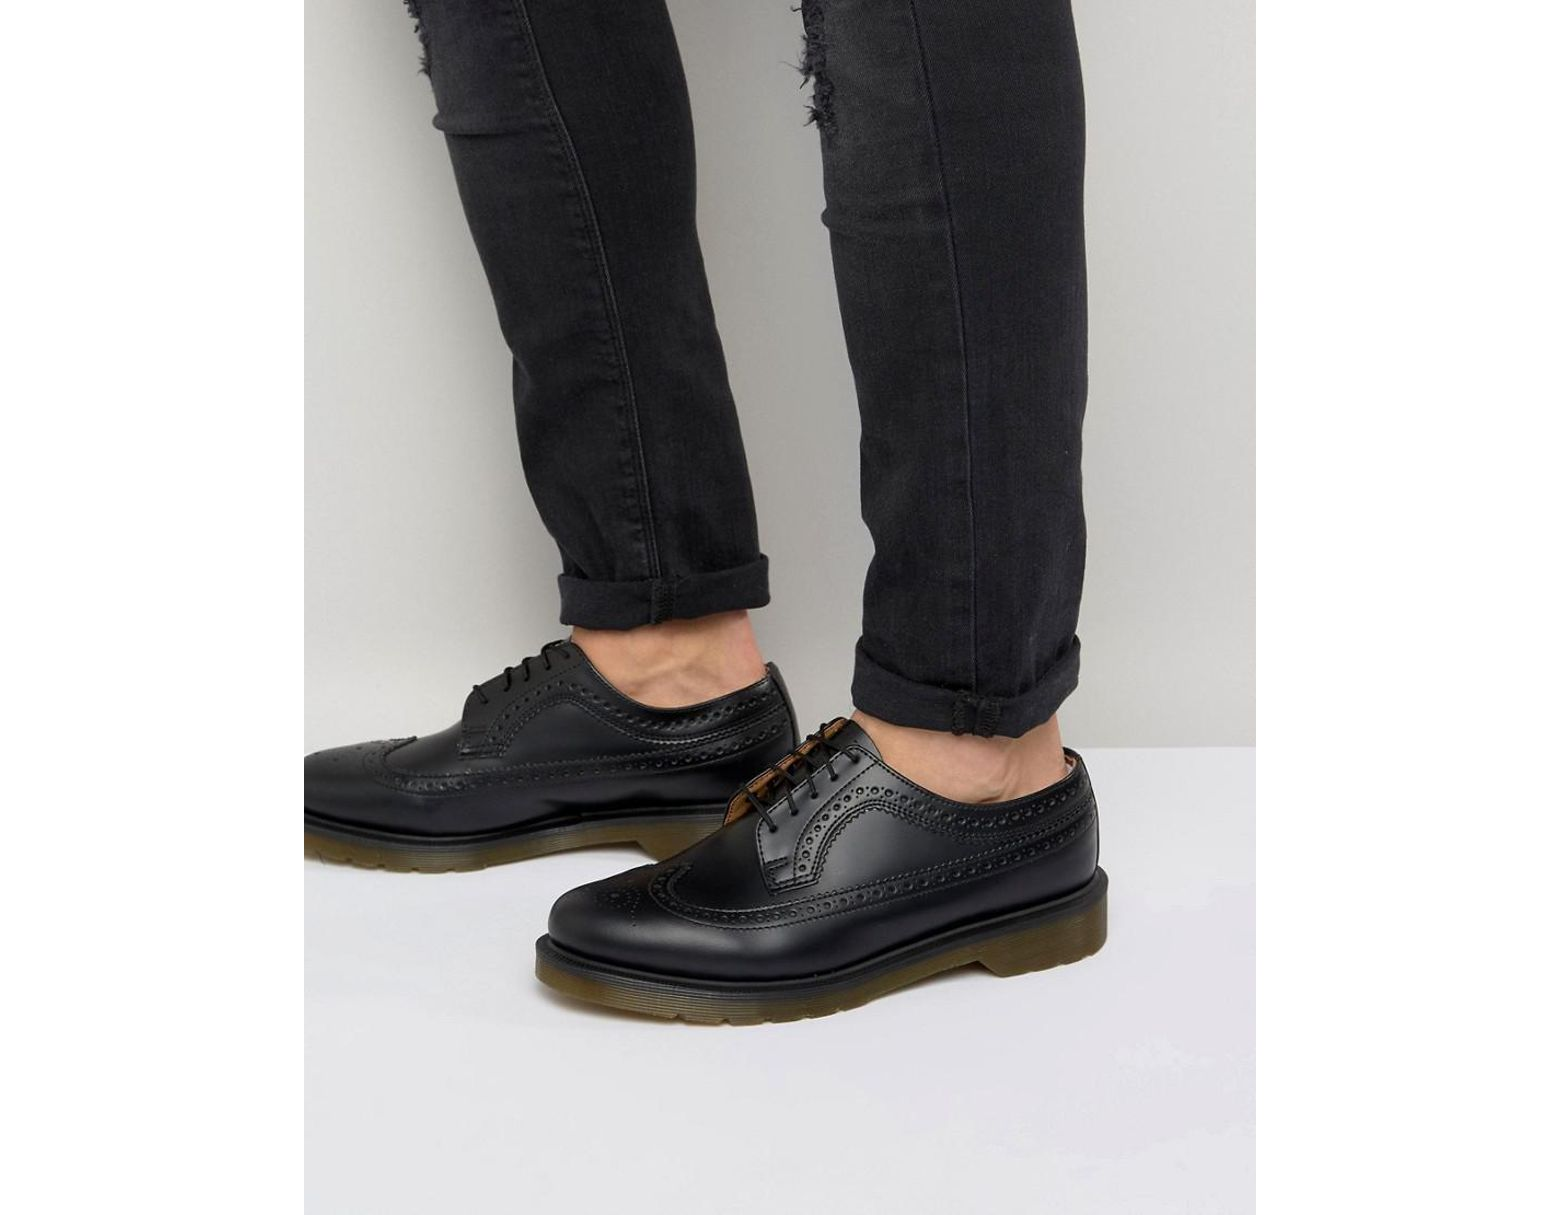 a90385e29c Dr. Martens 3989 Brogues In Black in Black for Men - Lyst